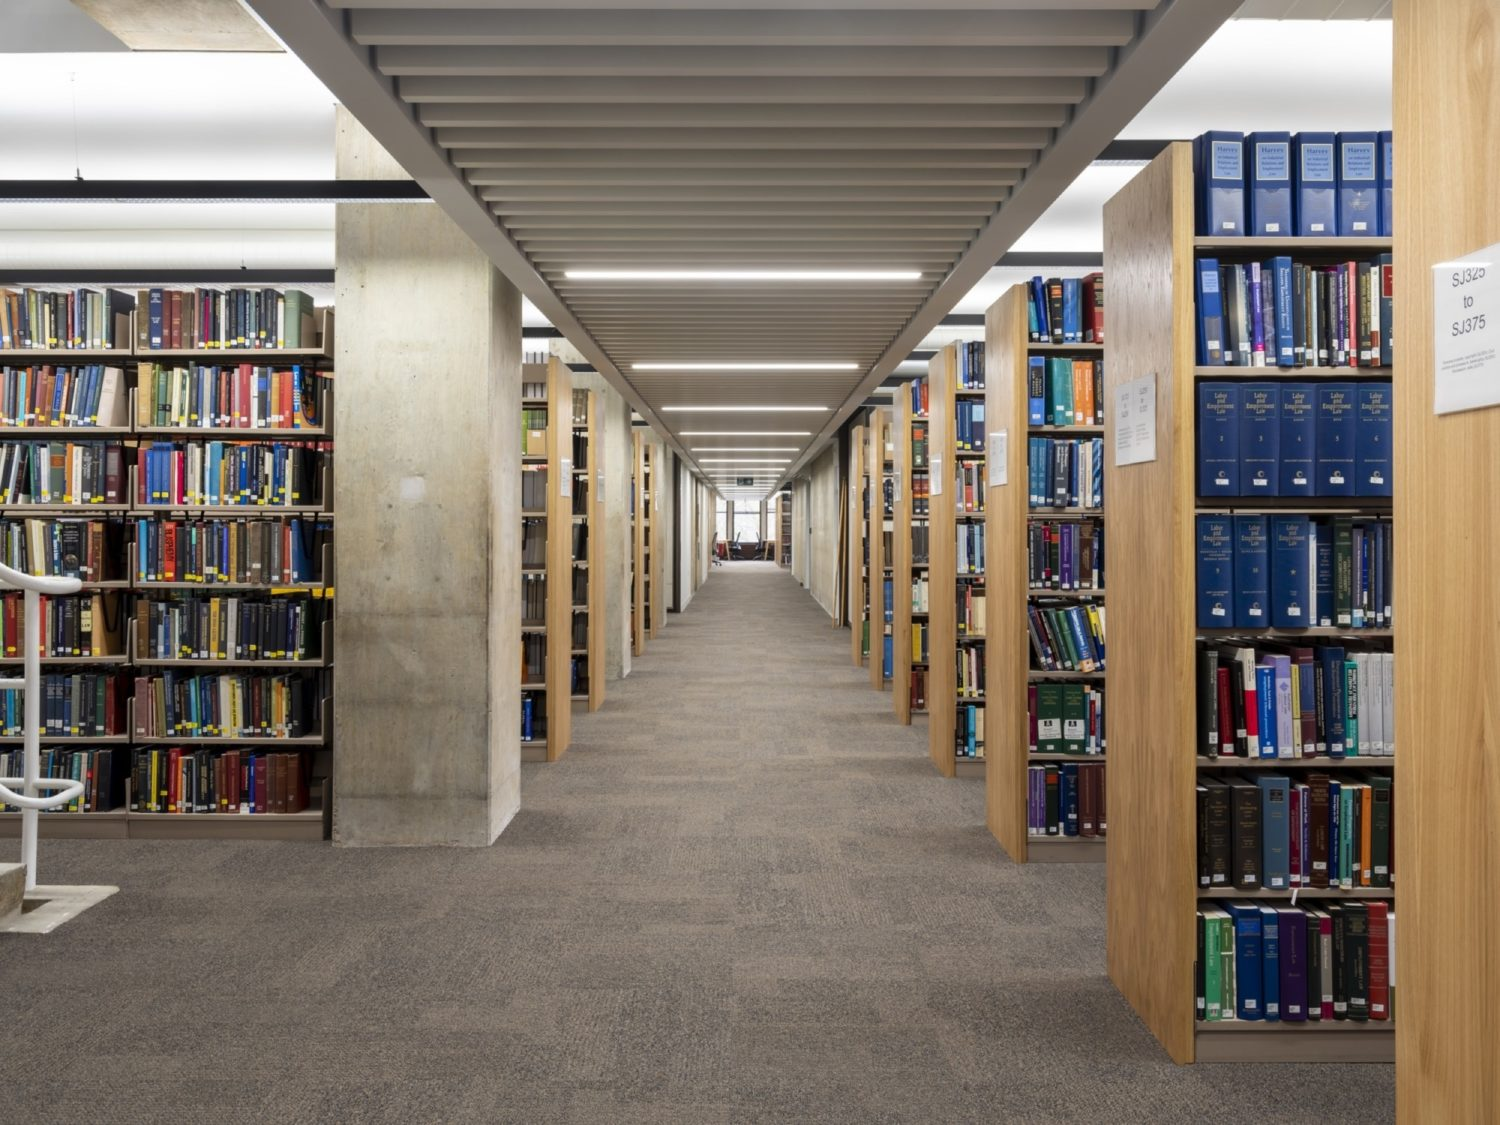 University of London fit out